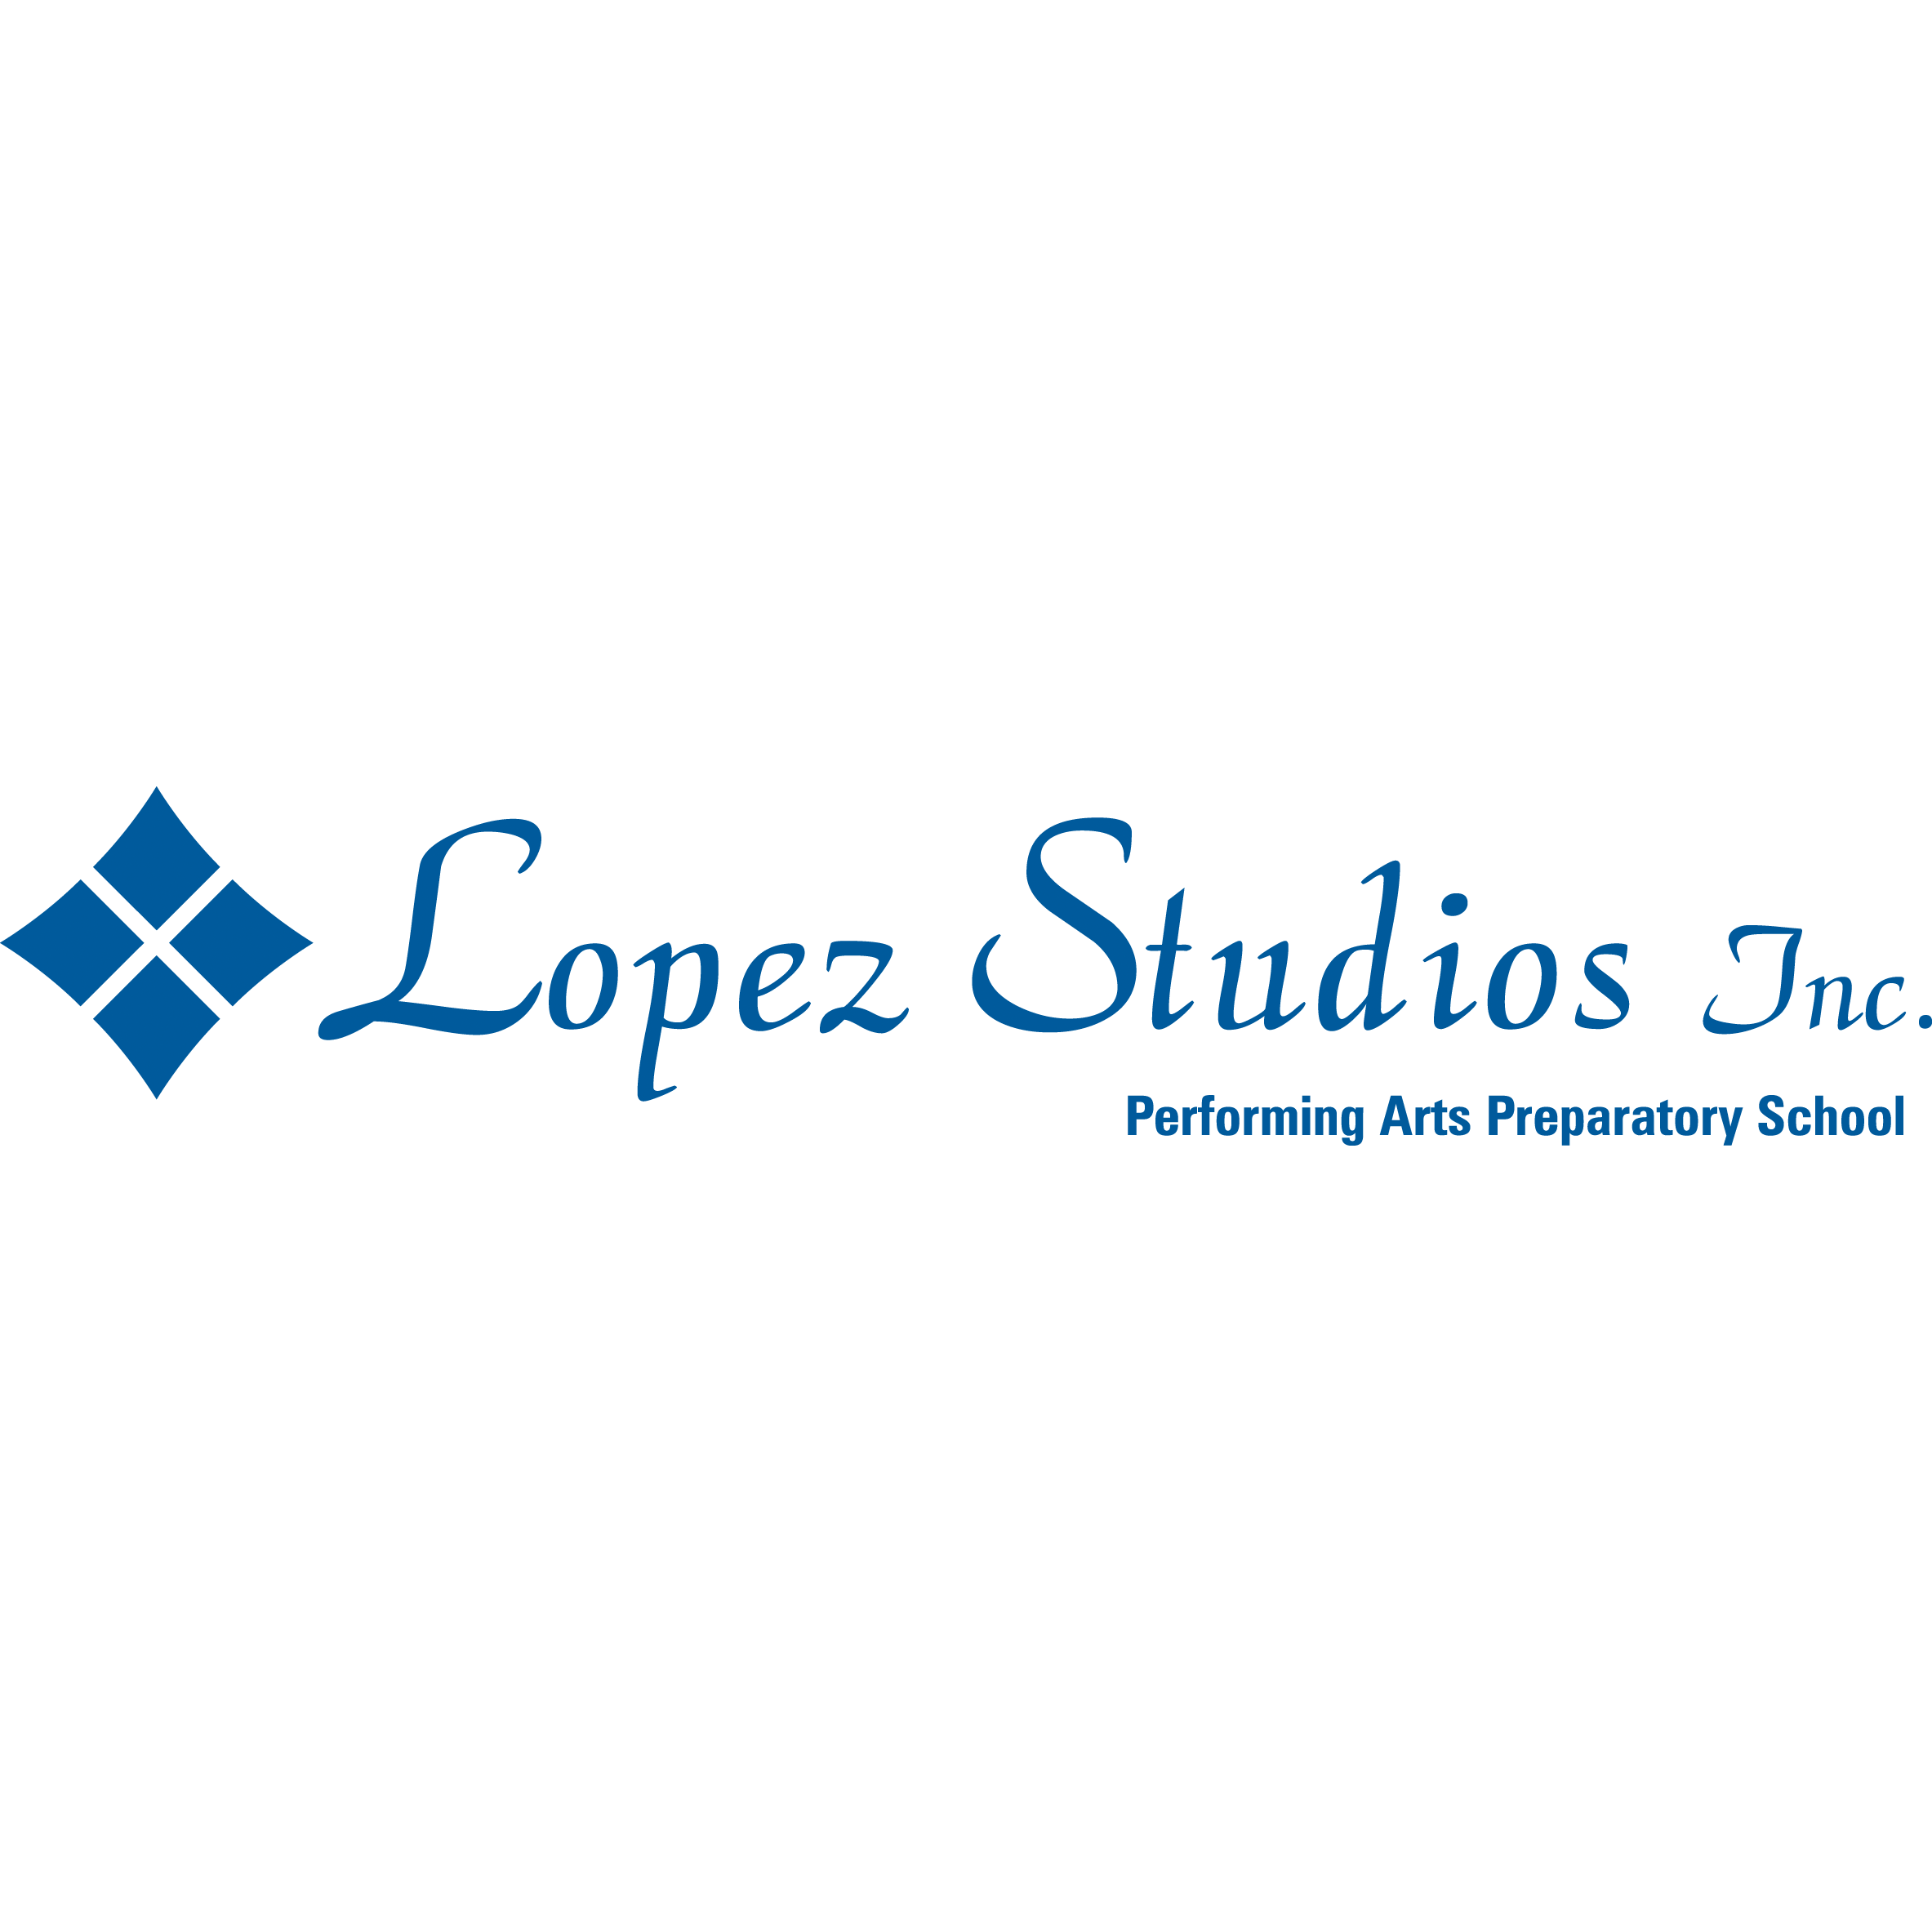 Lopez Studios, Inc. Performing Arts Preparatory School